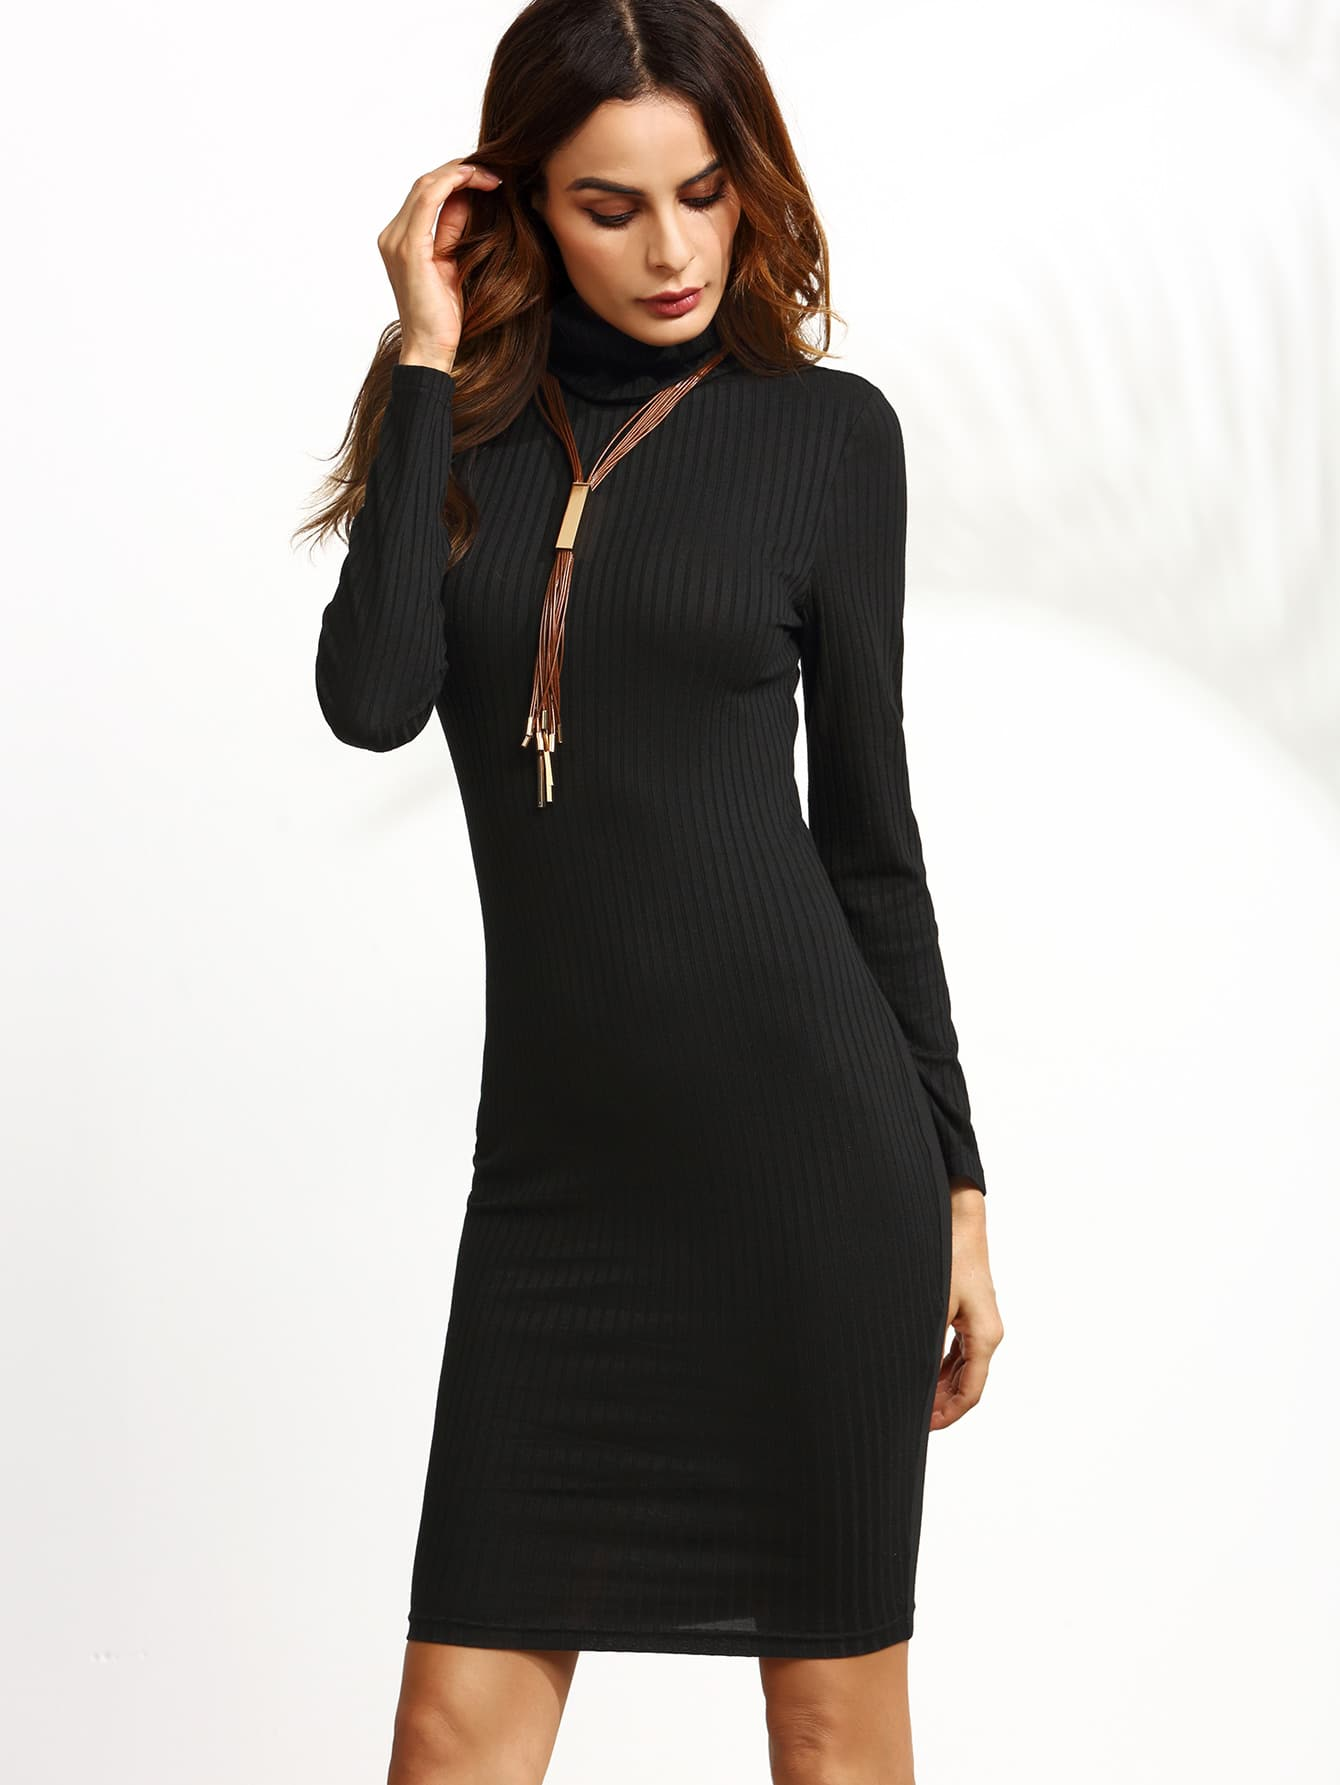 Turtleneck Ribbed Pencil Dress dress160818701